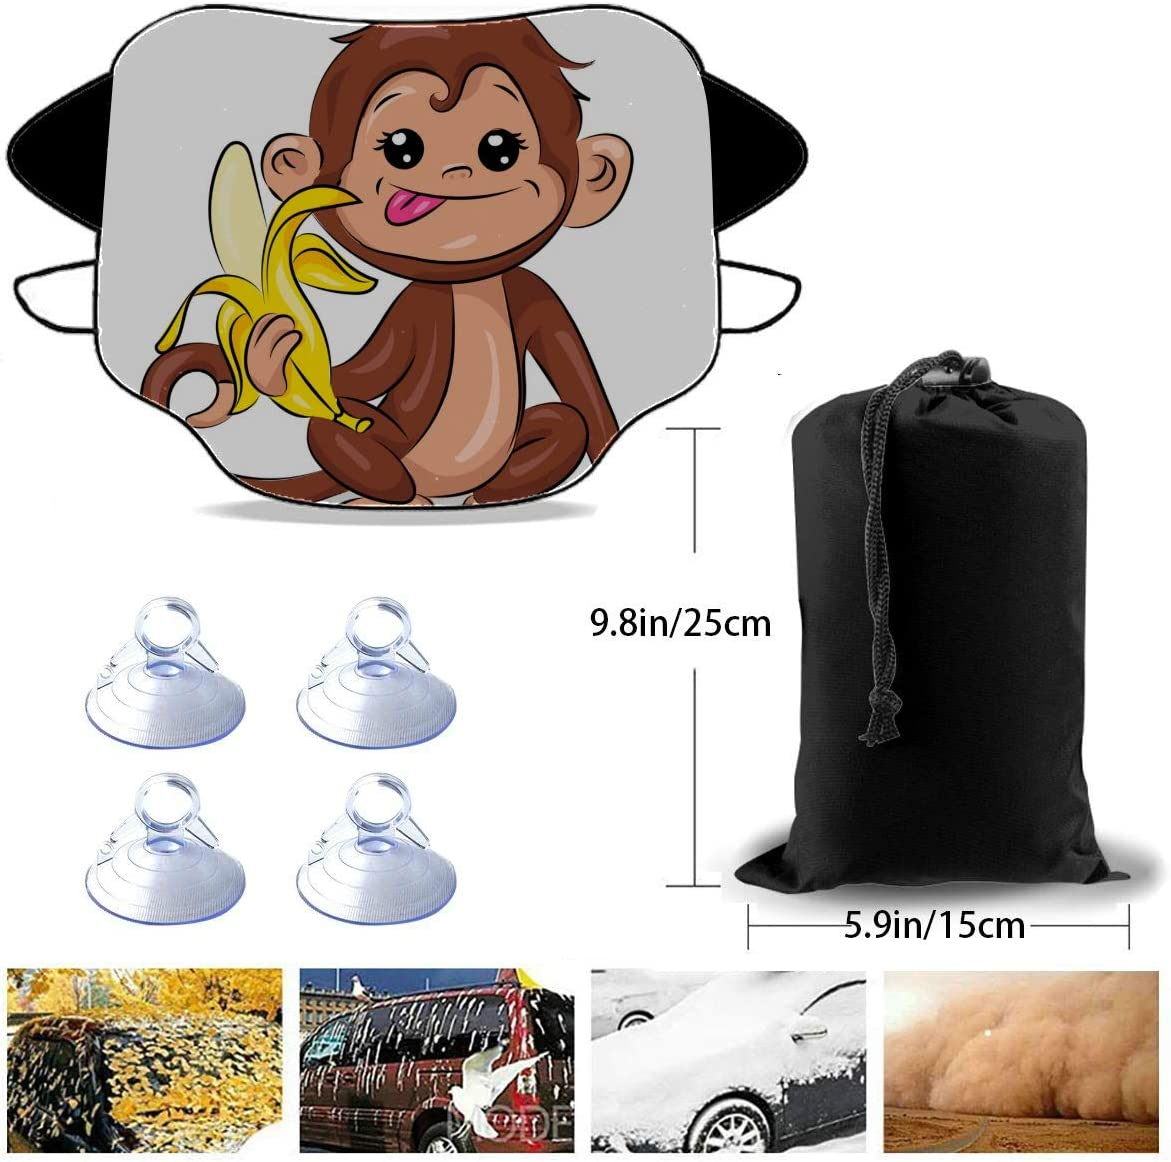 Zouxab Foldable Sunshade Cover Lucky Happy Little Monkey Cartoon Front Window Shade 57.9x46.5 Inch(147cmx118cm) for Most Vehicles by Protect The Windshield and Wiper from Sun,ice,Snow,Frost